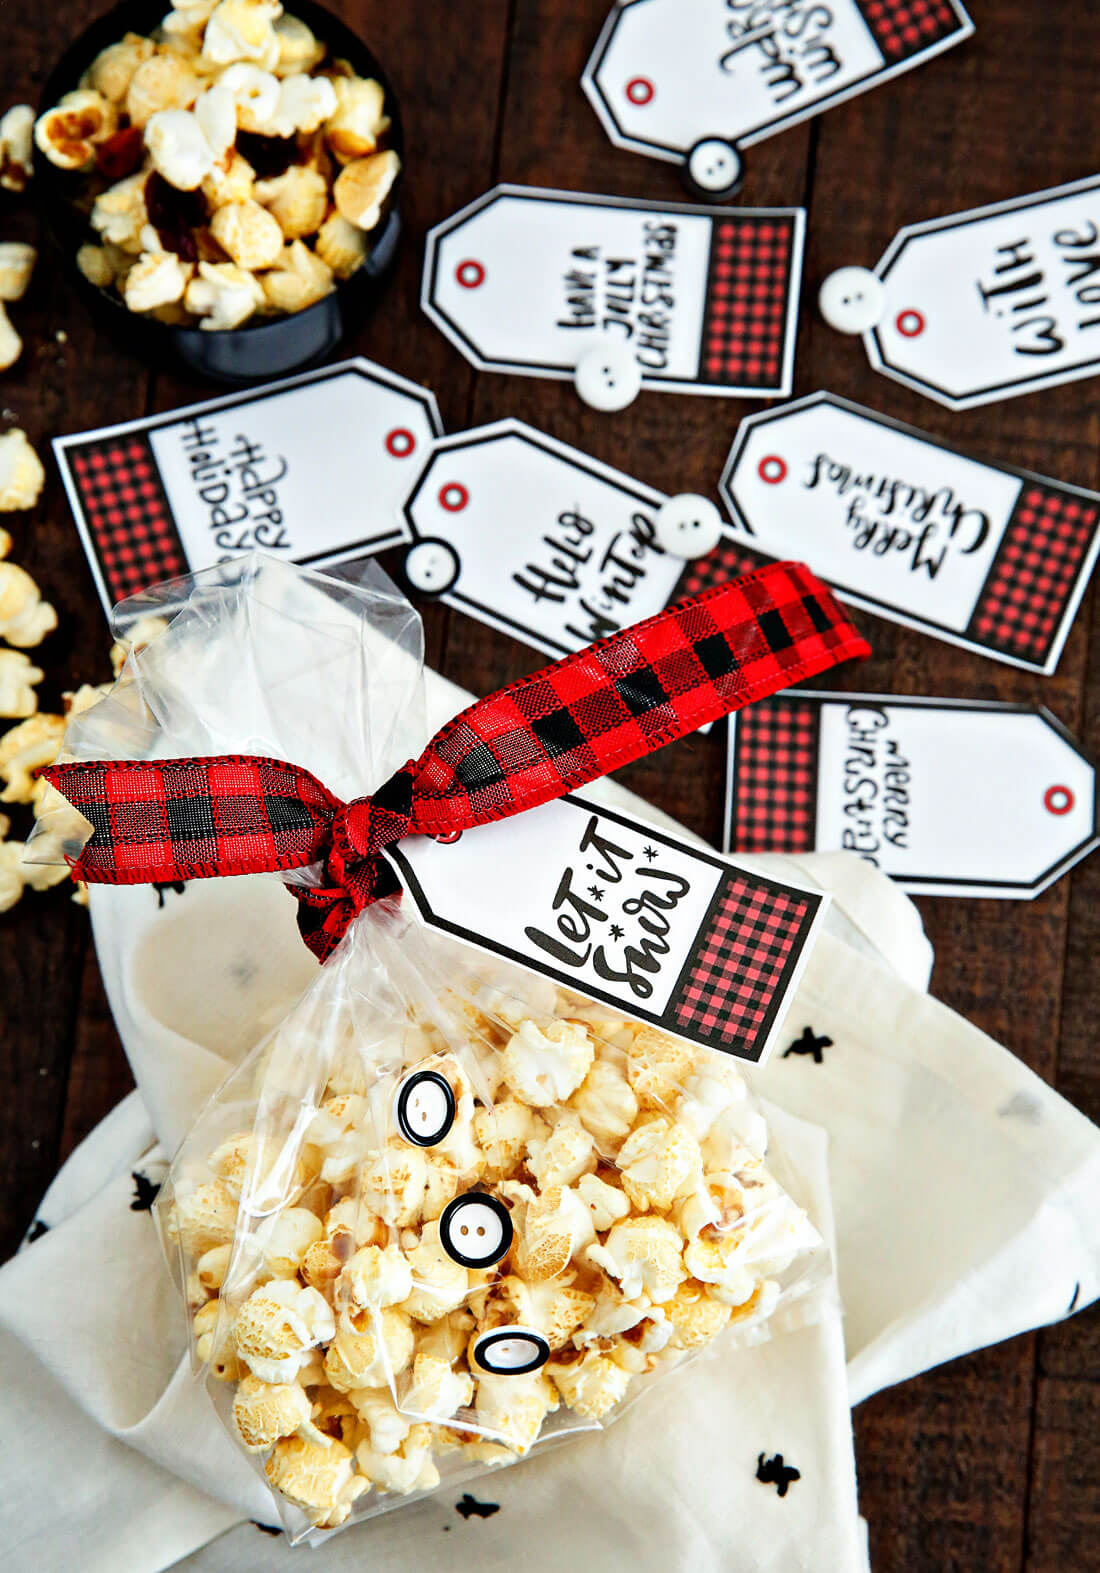 Holiday Kettle Corn Snack Mix - make this treat for friends and neighbors for Christmas! With cute holiday printables from www.thirtyhandmadedays.com